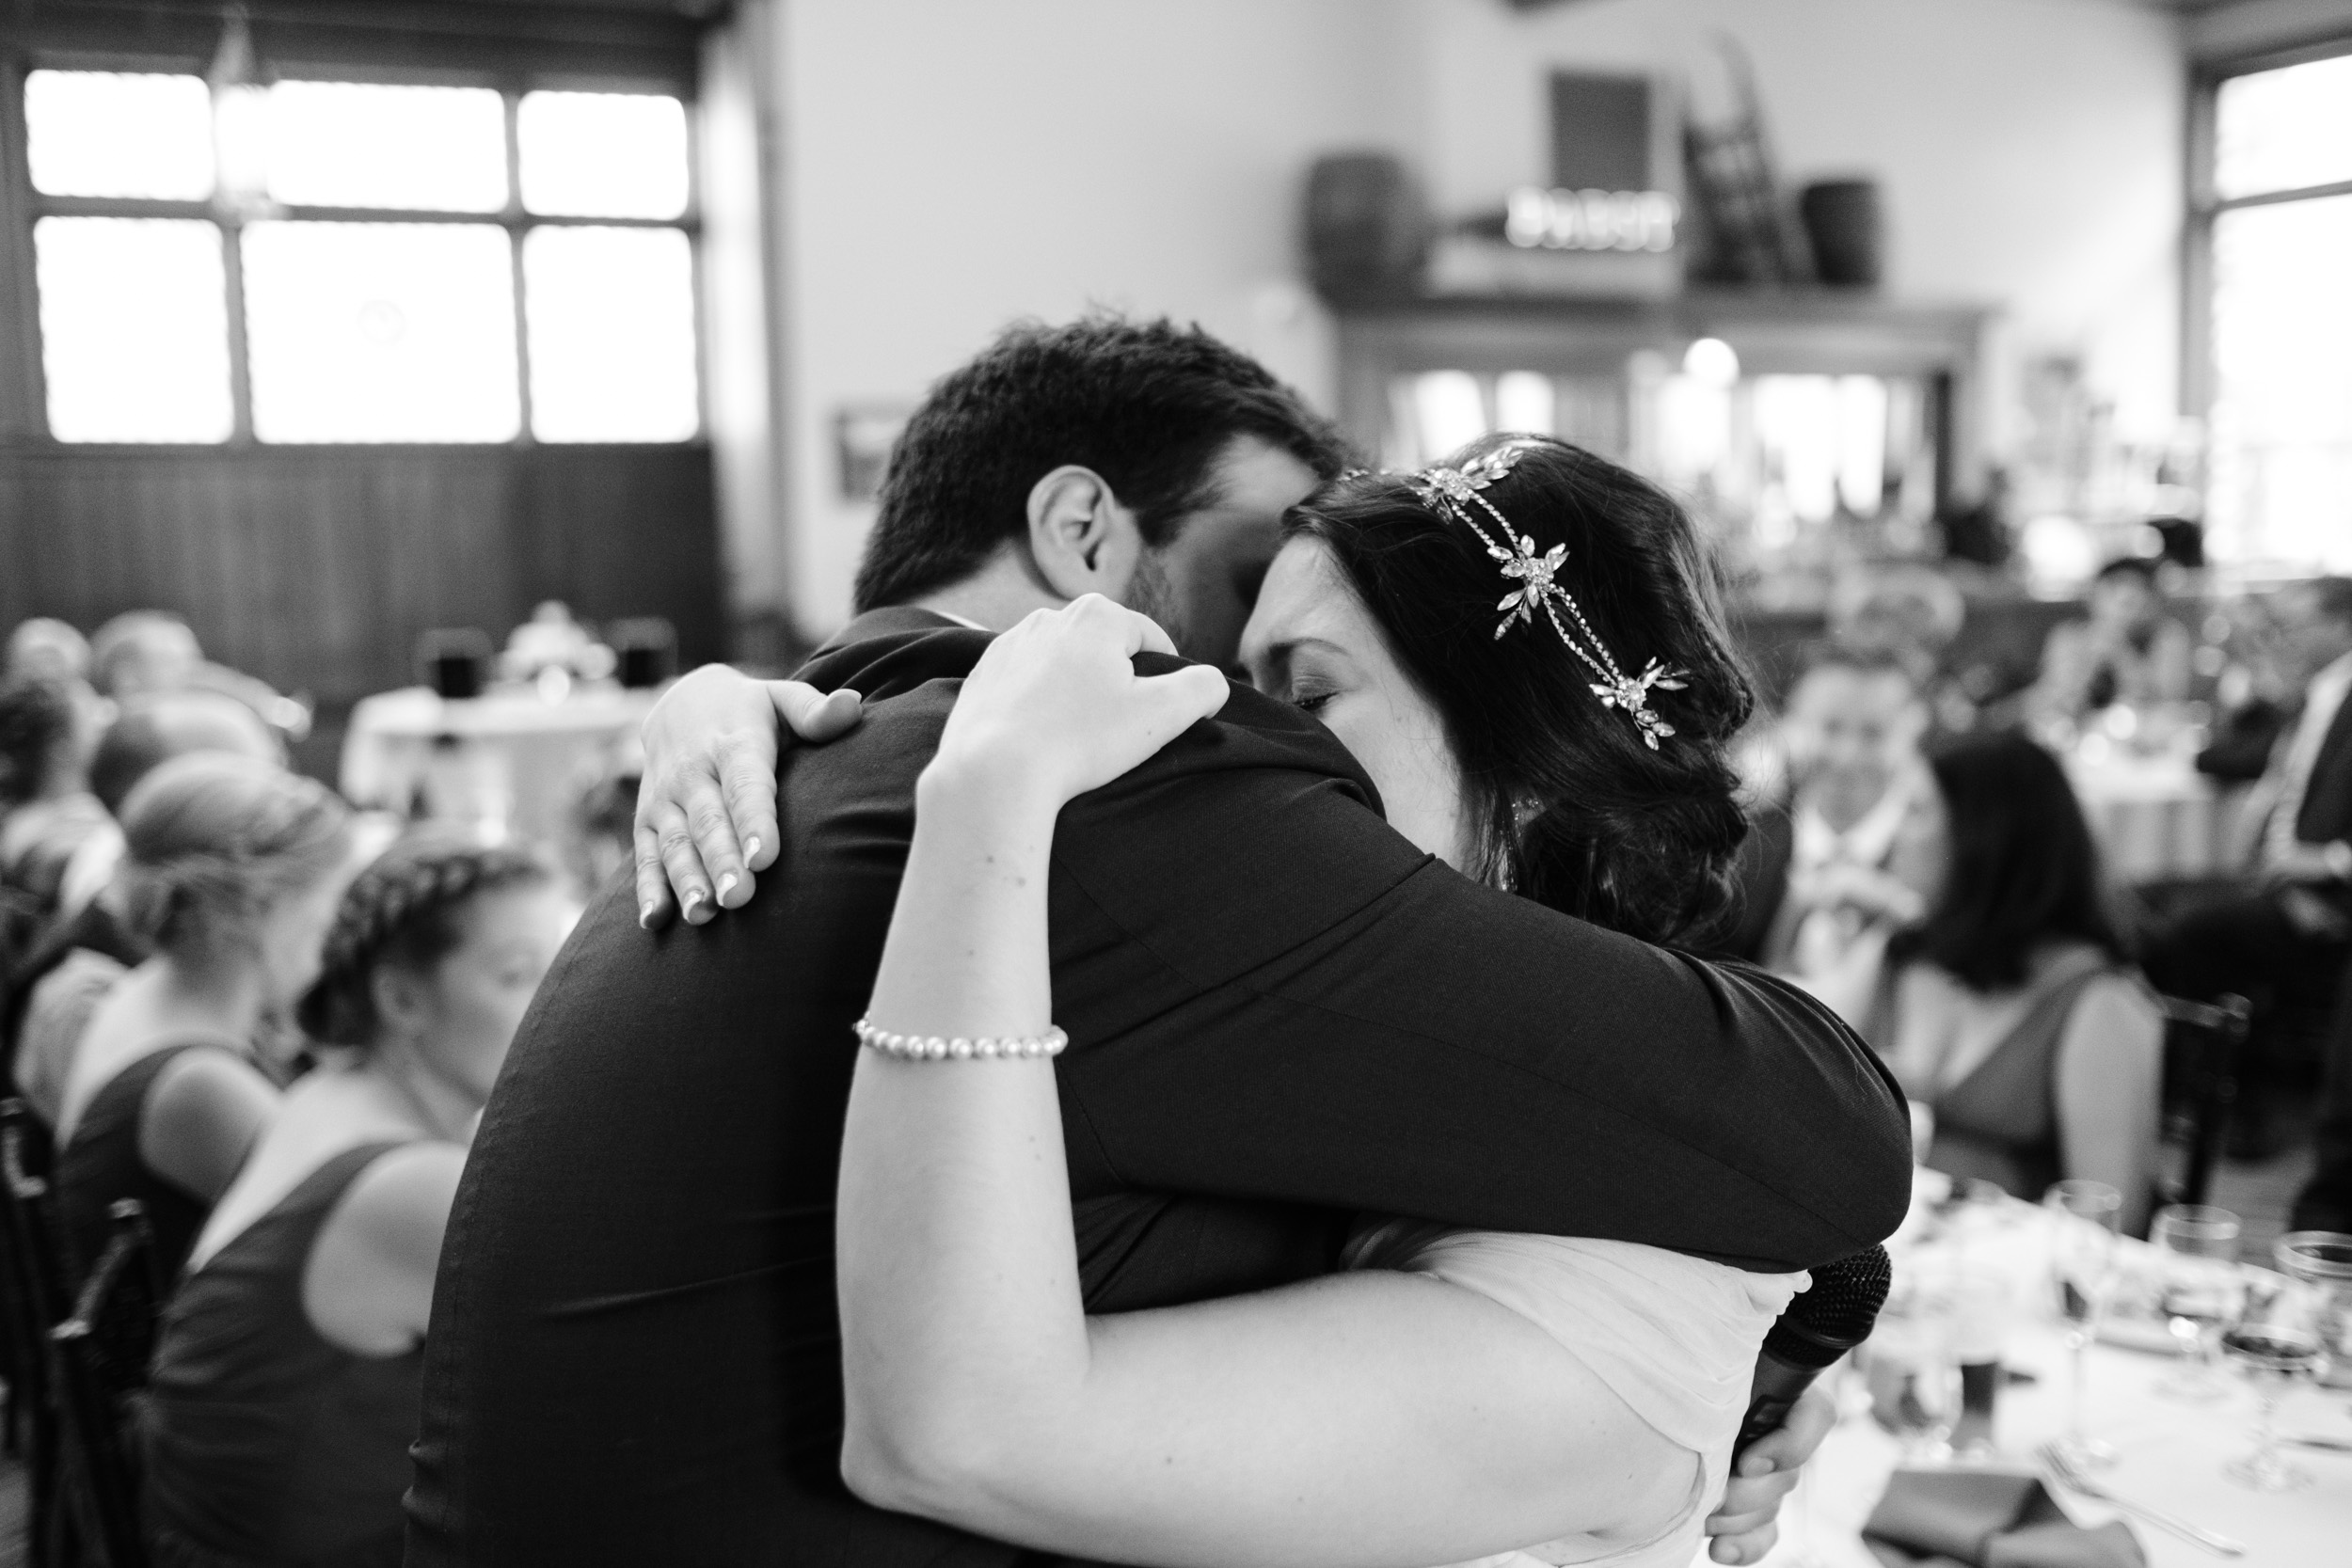 crying bride embraces husband during first dance.